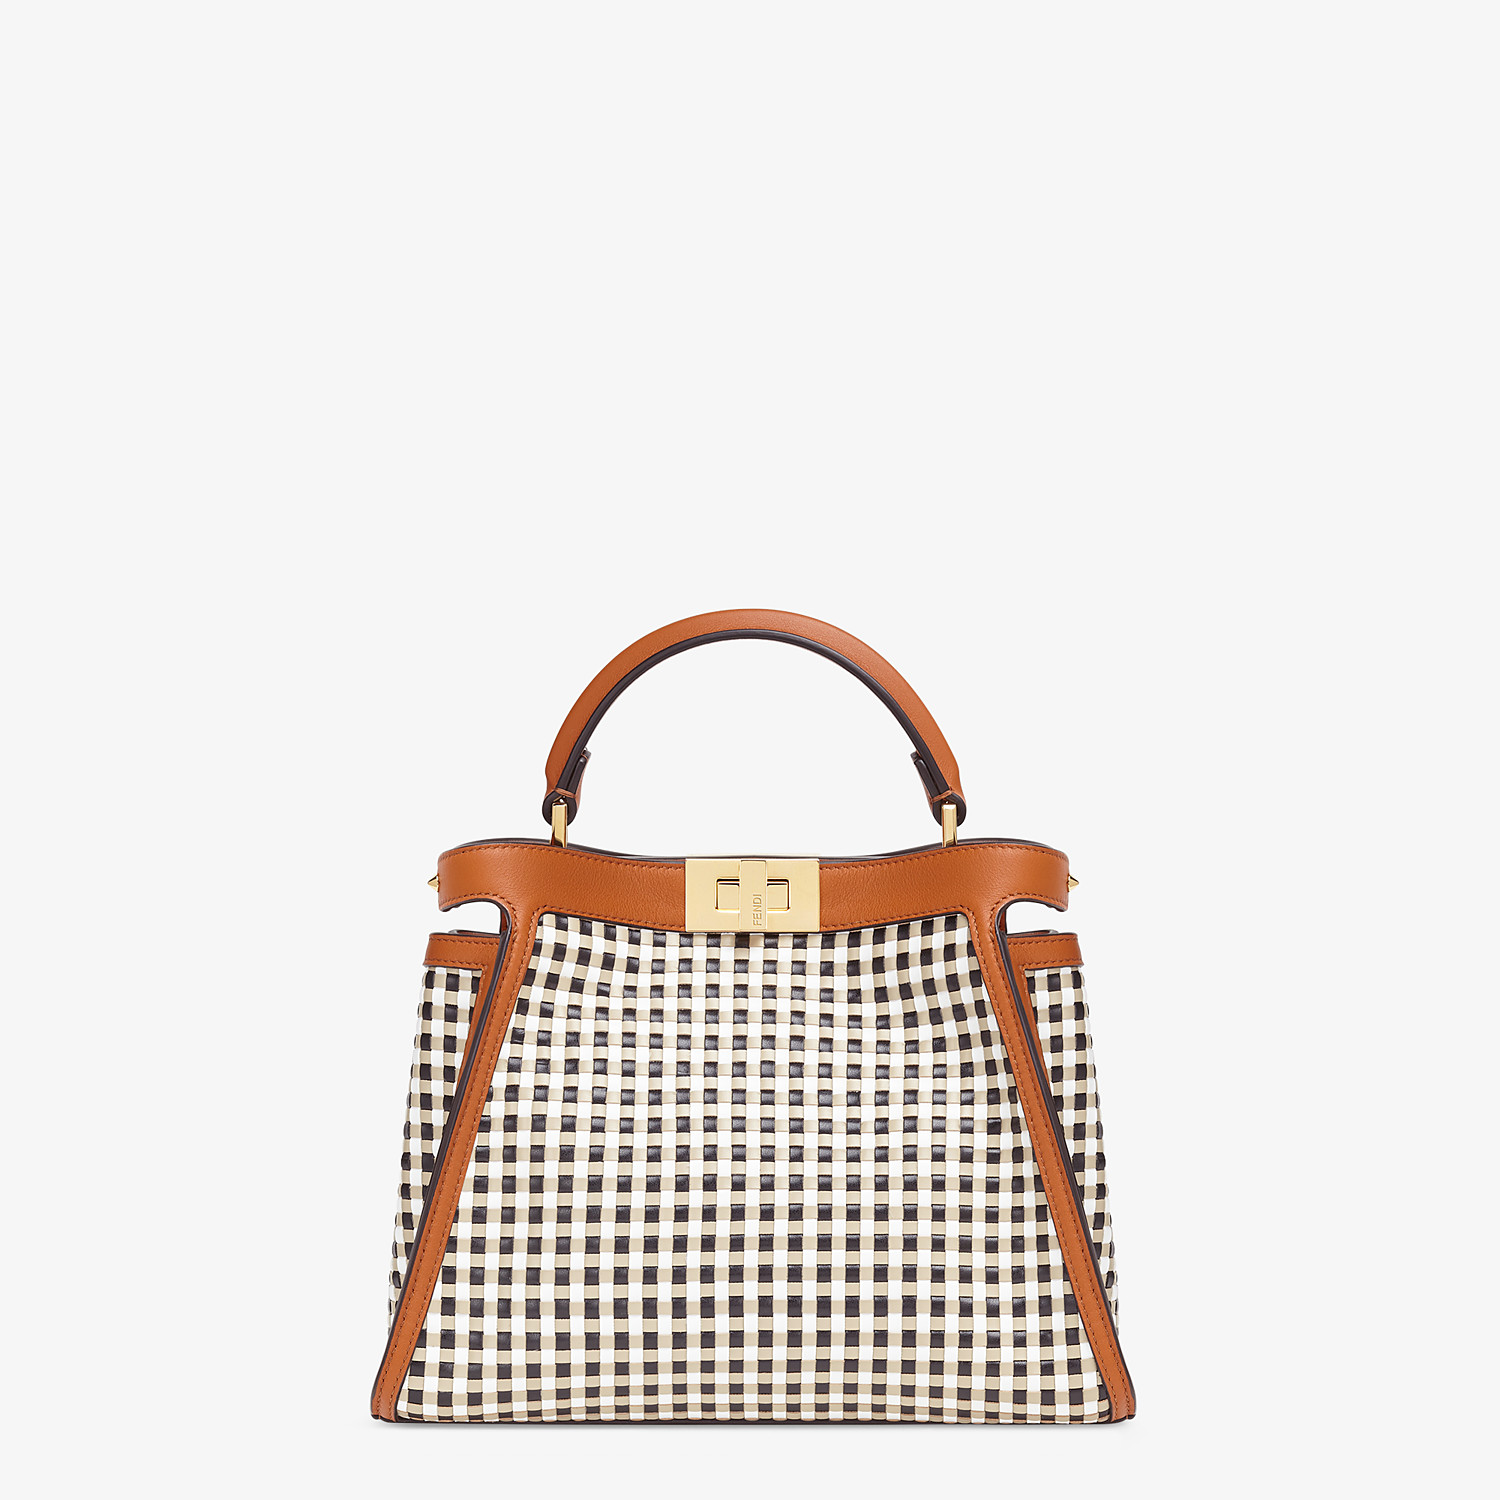 FENDI PEEKABOO ICONIC ESSENTIALLY - Vichy interlace bag - view 1 detail